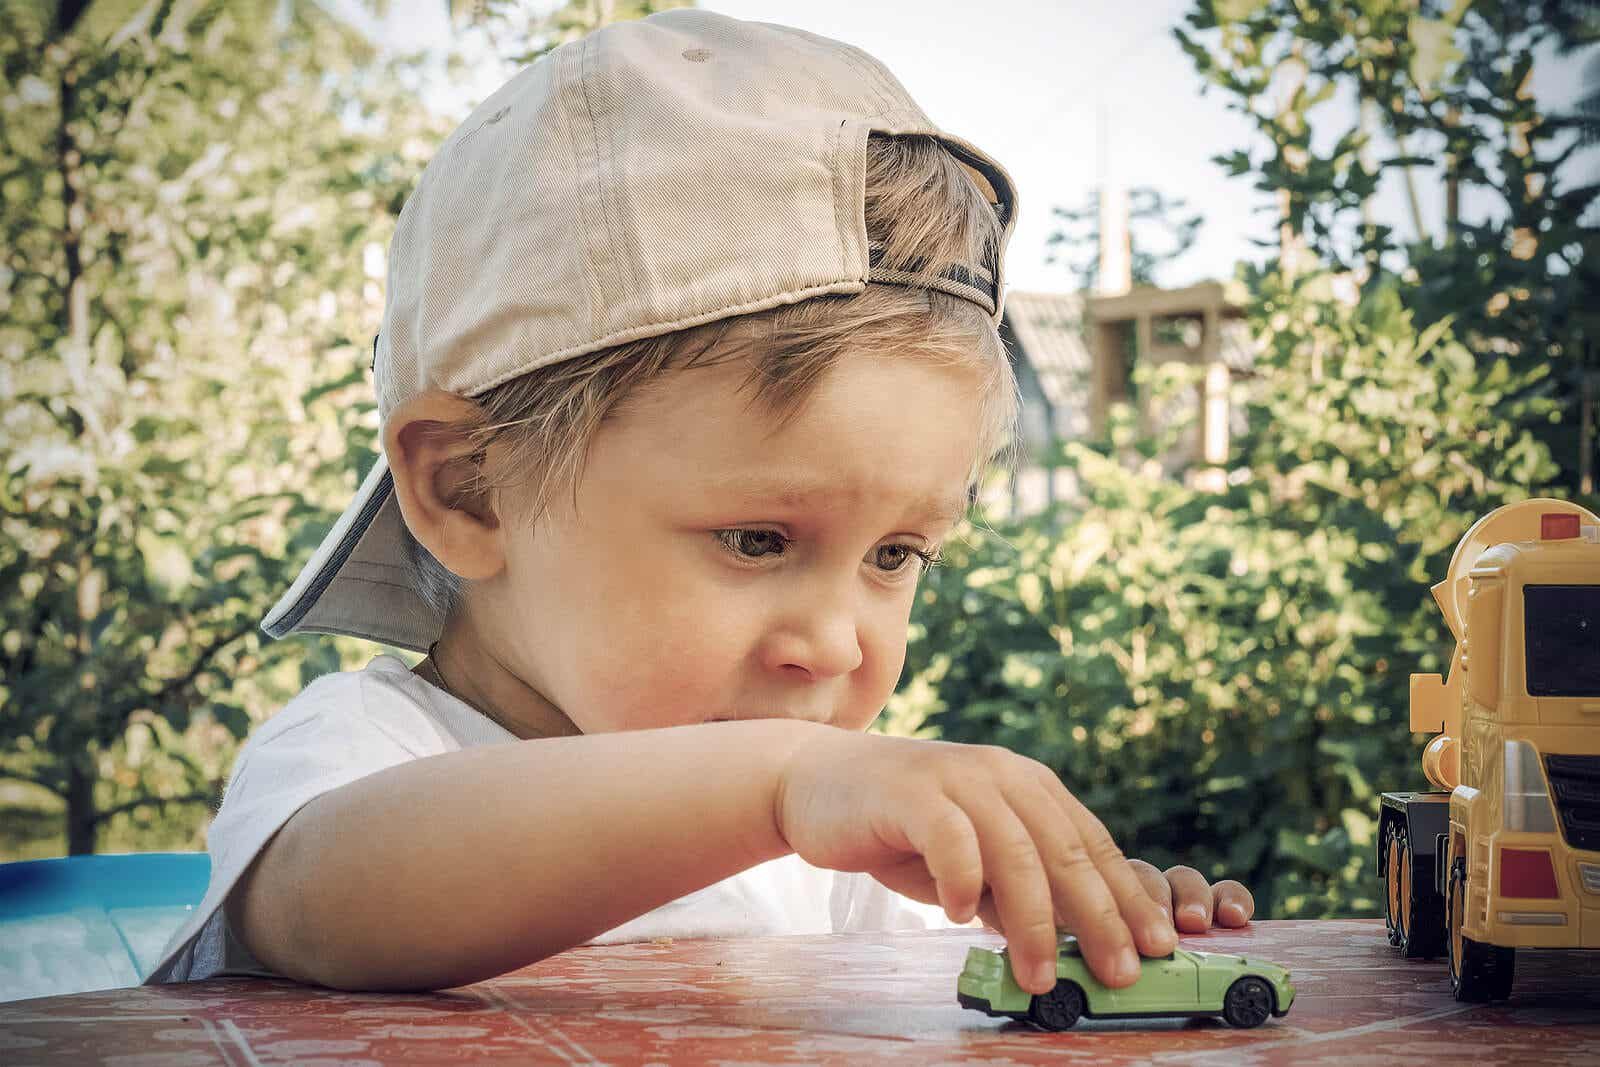 2-year-old boy playing with a toy car.